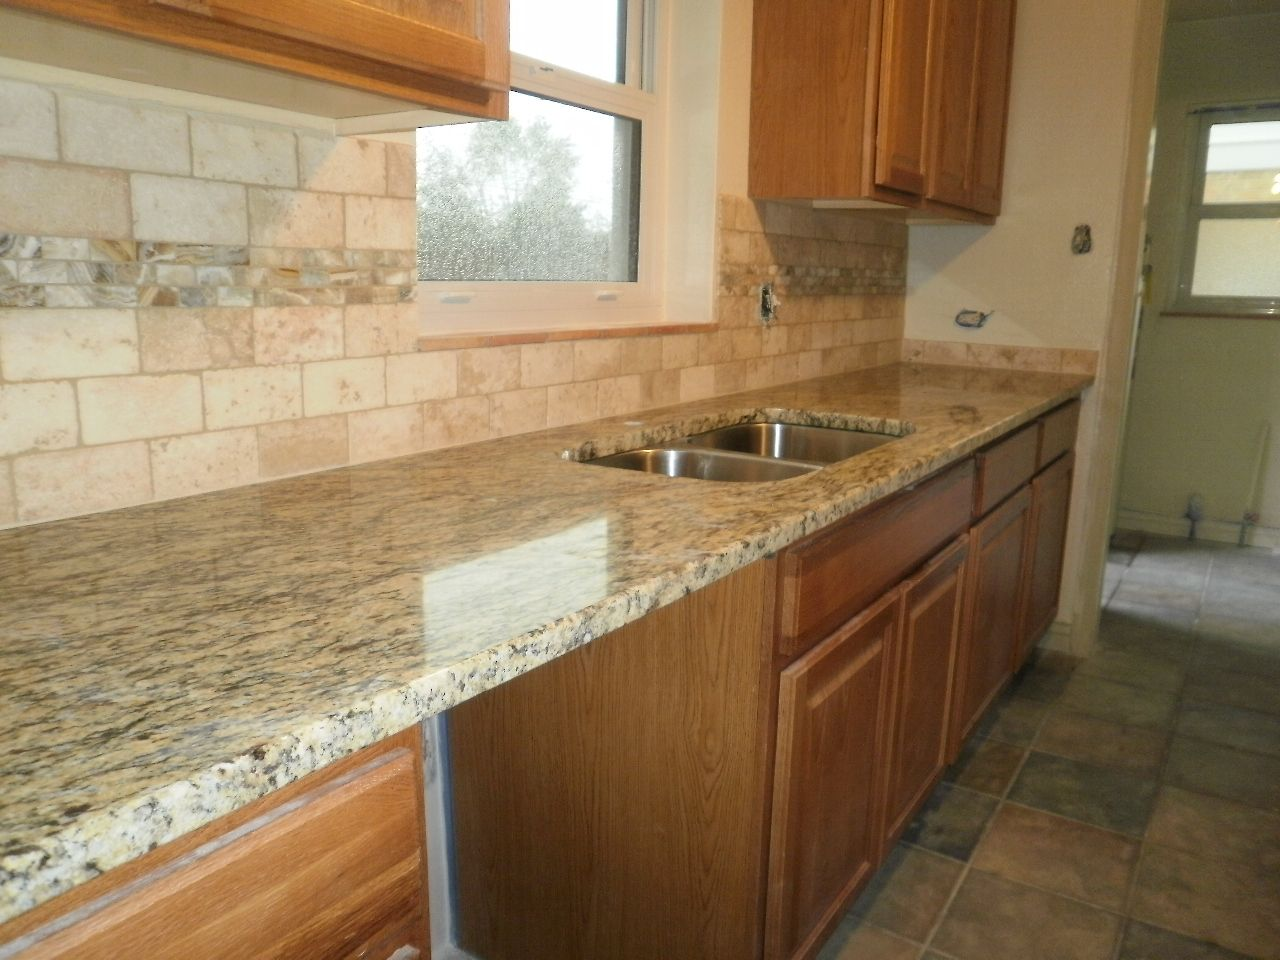 High Resolution Laminate Countertops The Most Suitable Kitchen